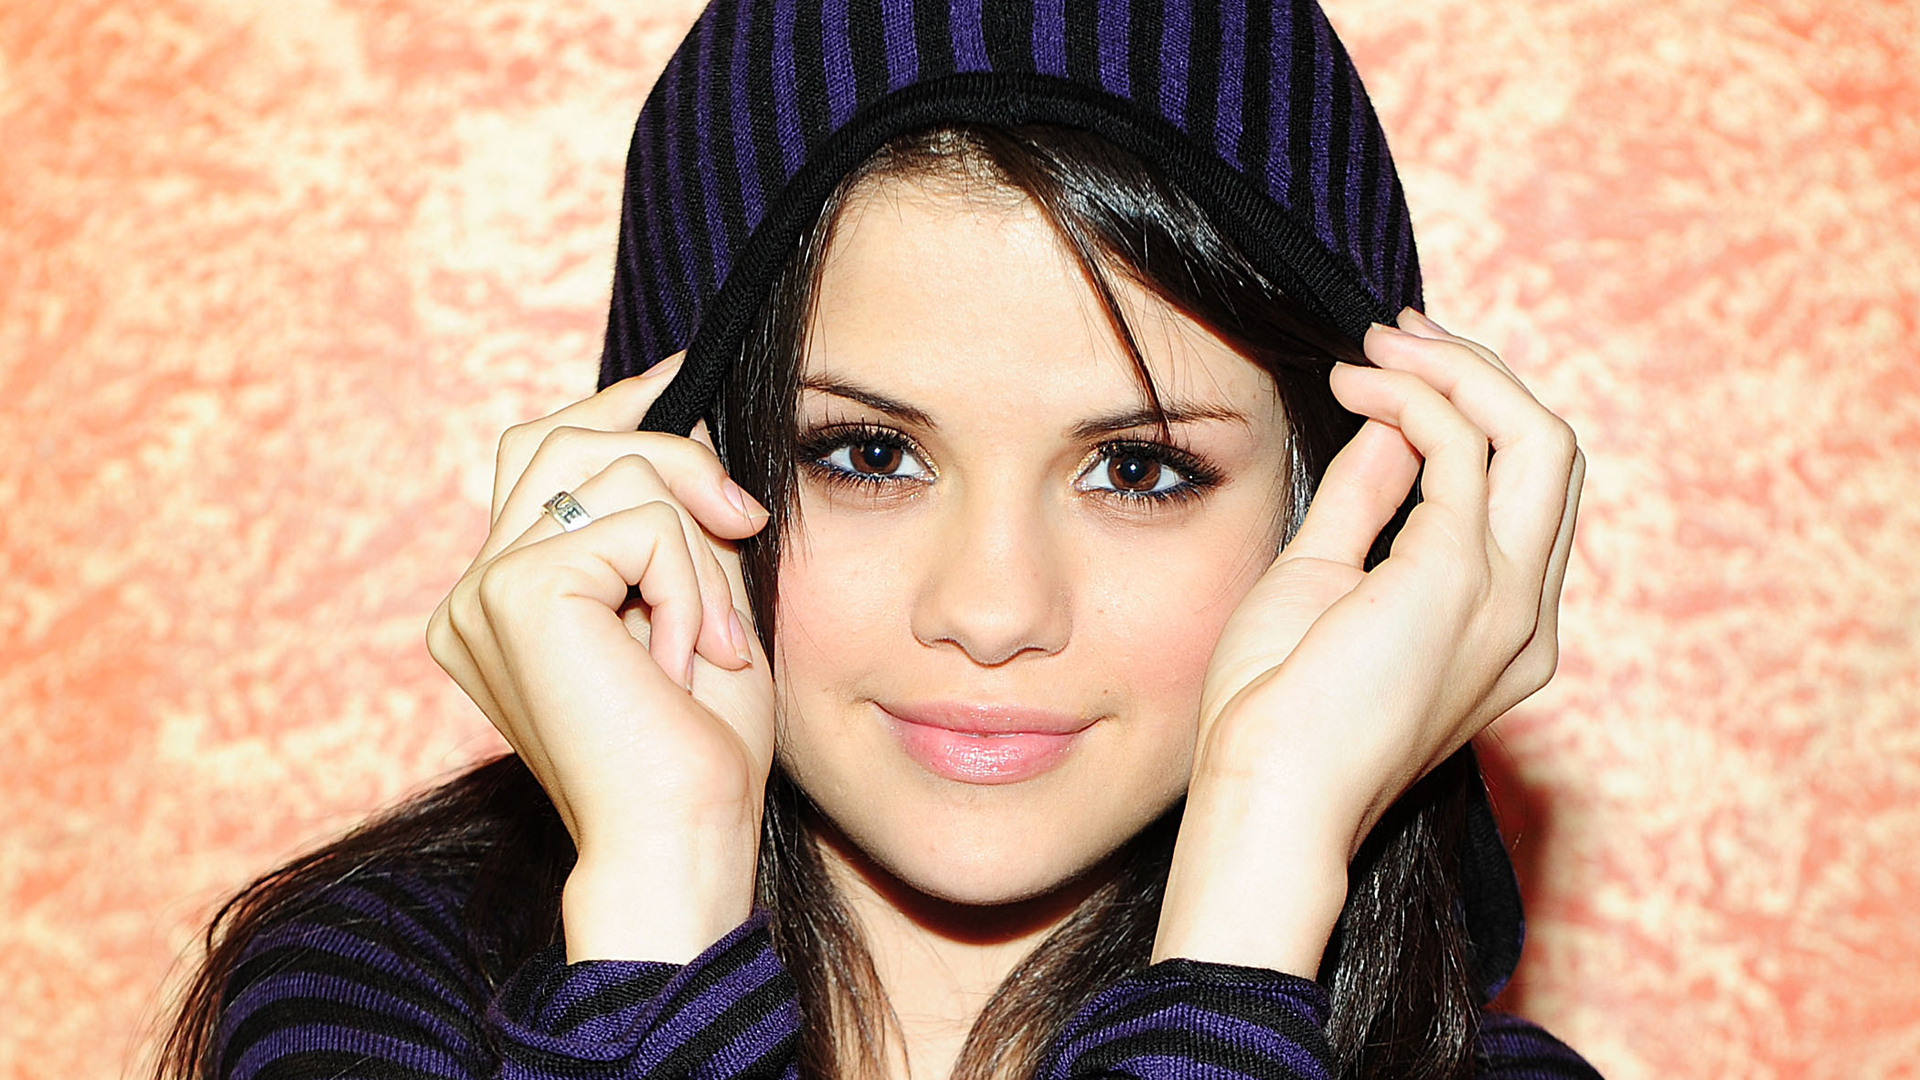 selena gomez wallpapers images photos pictures backgrounds